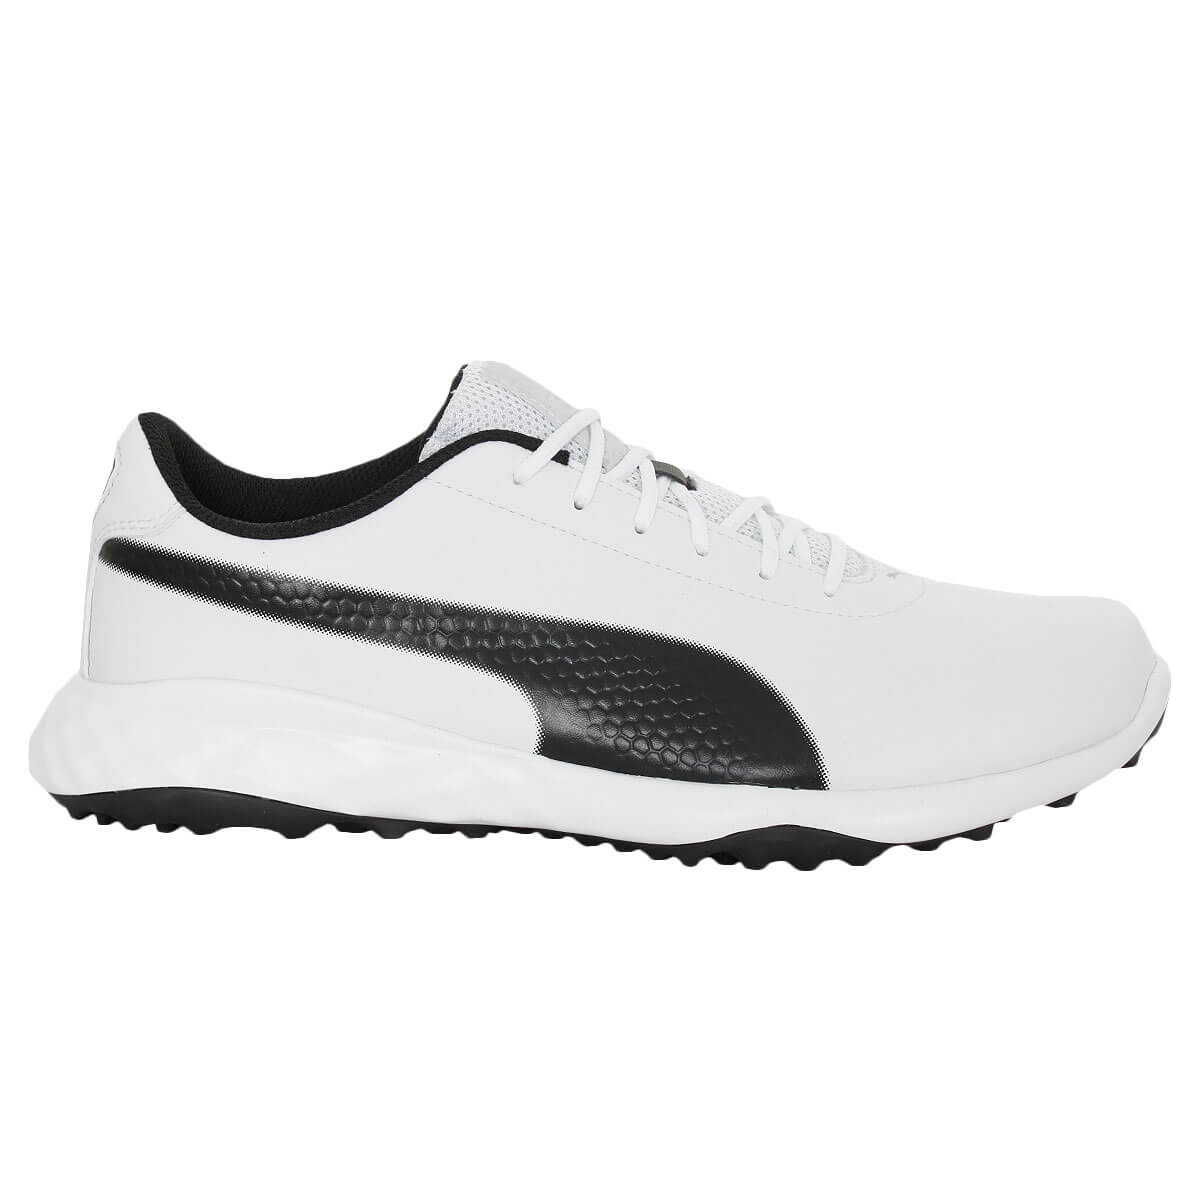 Details about Puma Golf Mens Grip Fusion Classic Spikeless Performance Golf Shoes 51% OFF RRP